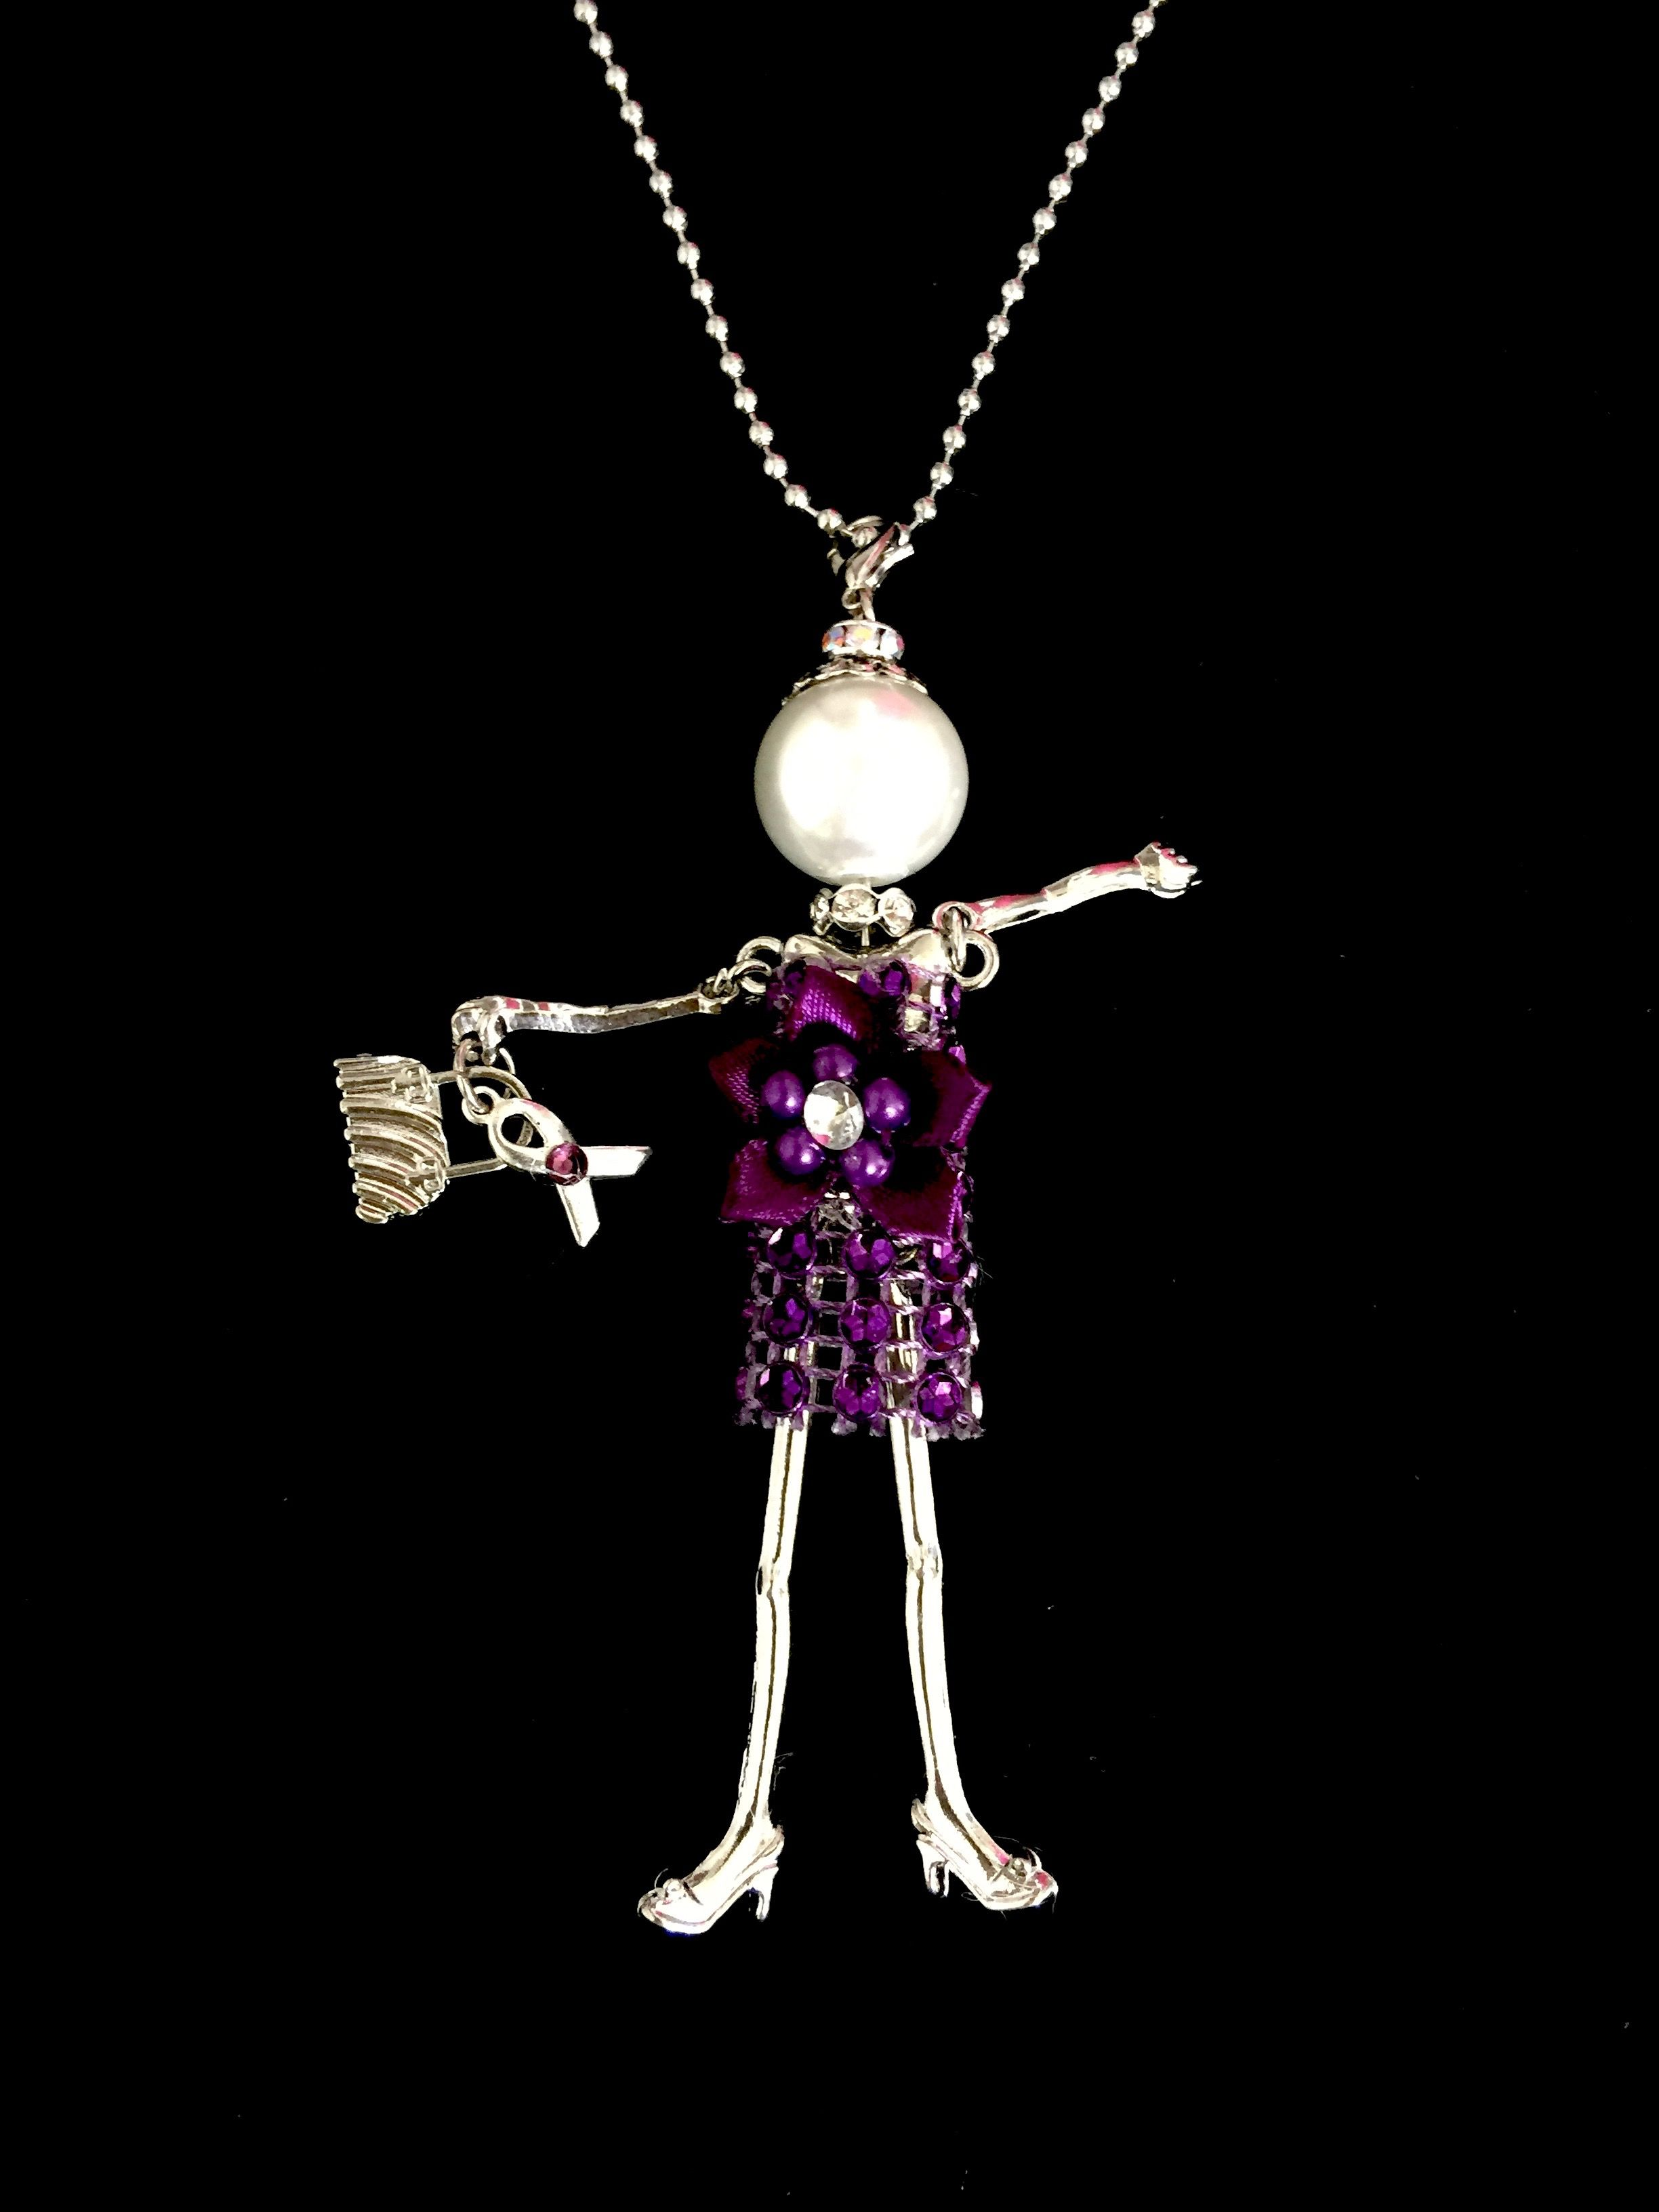 French doll necklace for pancreatic cancer support.